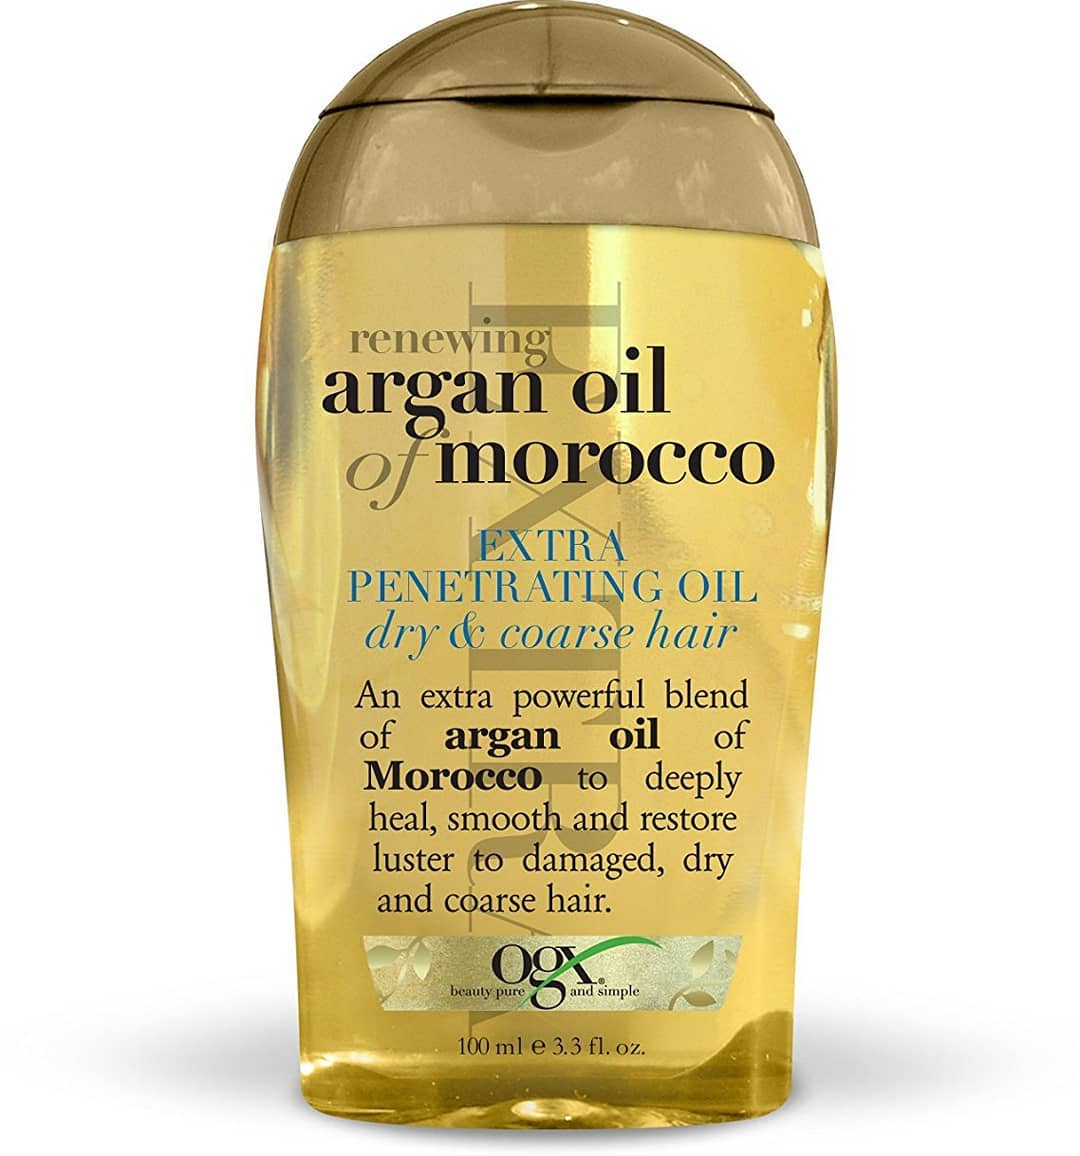 aragn oil as shampoo